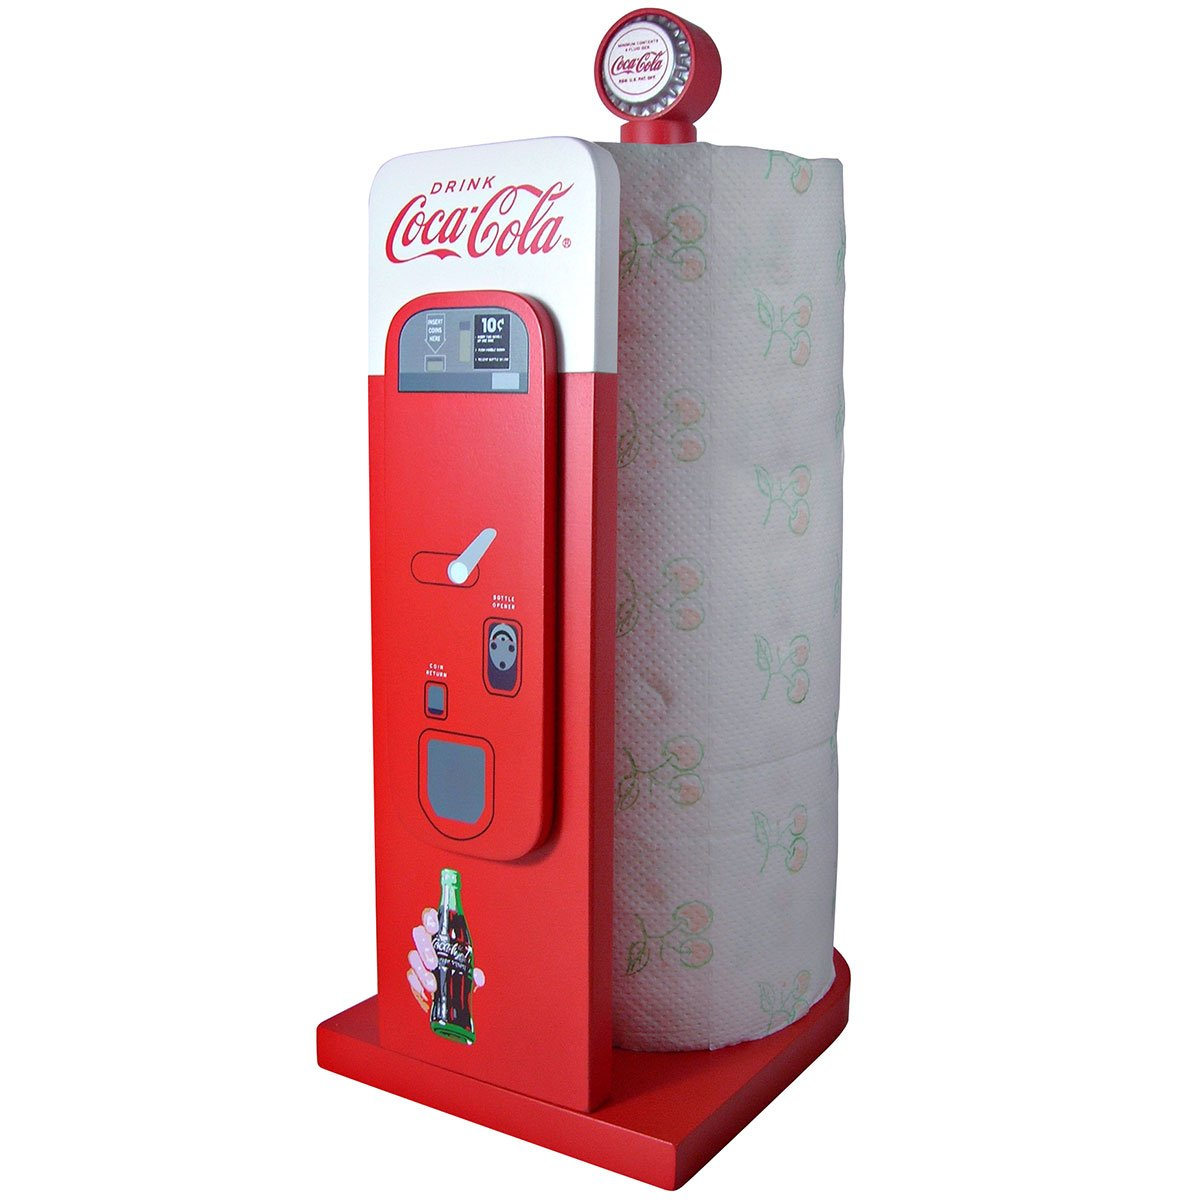 Coca-Cola Vending Machine: Kitchen Collectible Paper Towel Holder